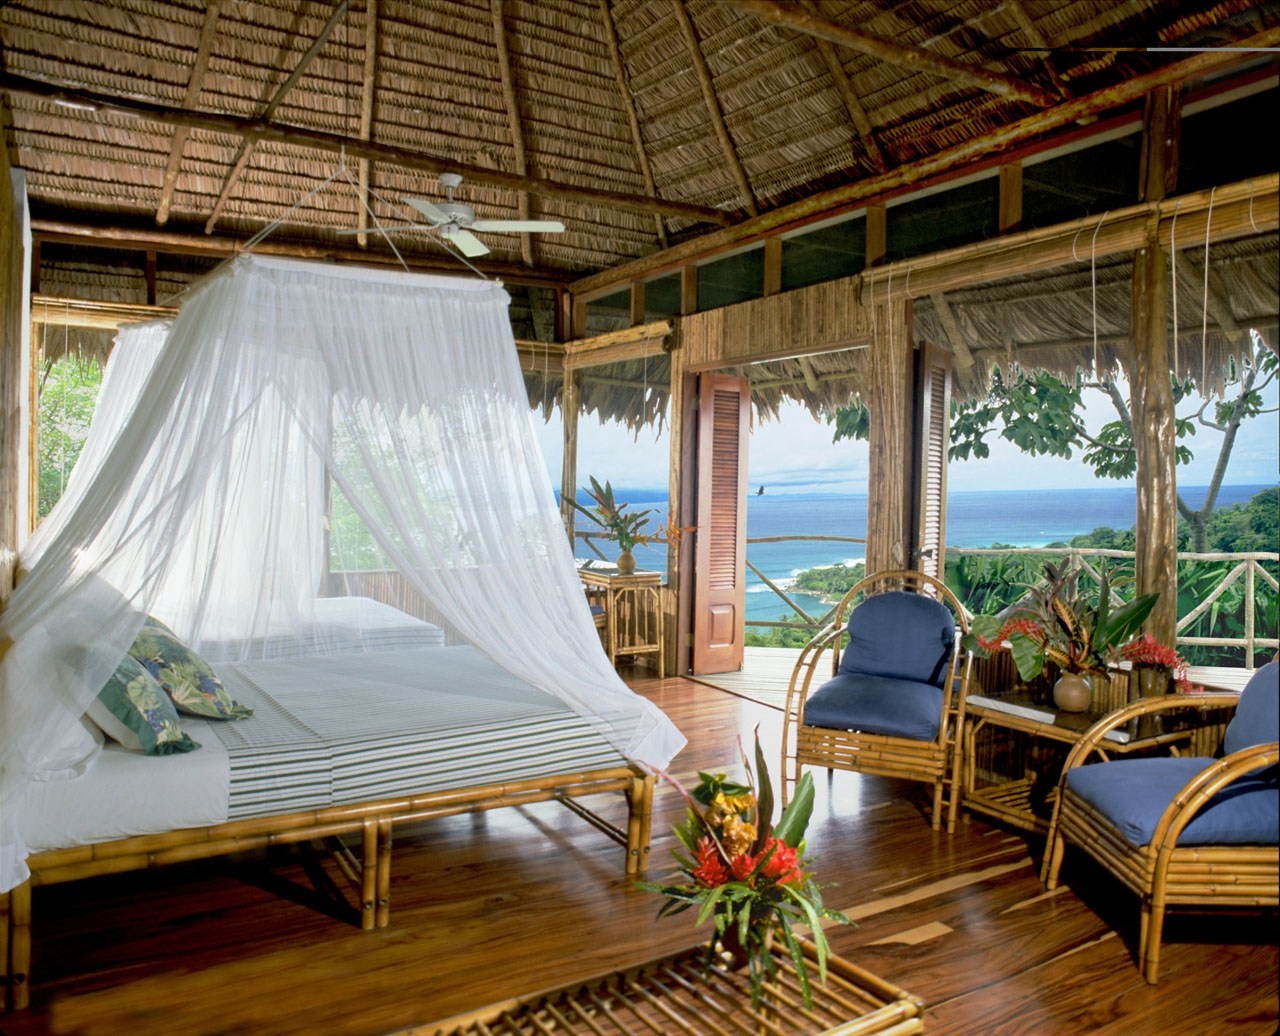 Private guest bungalow of the Lapa Rios Rainforest Ecolodge in Costa Rica